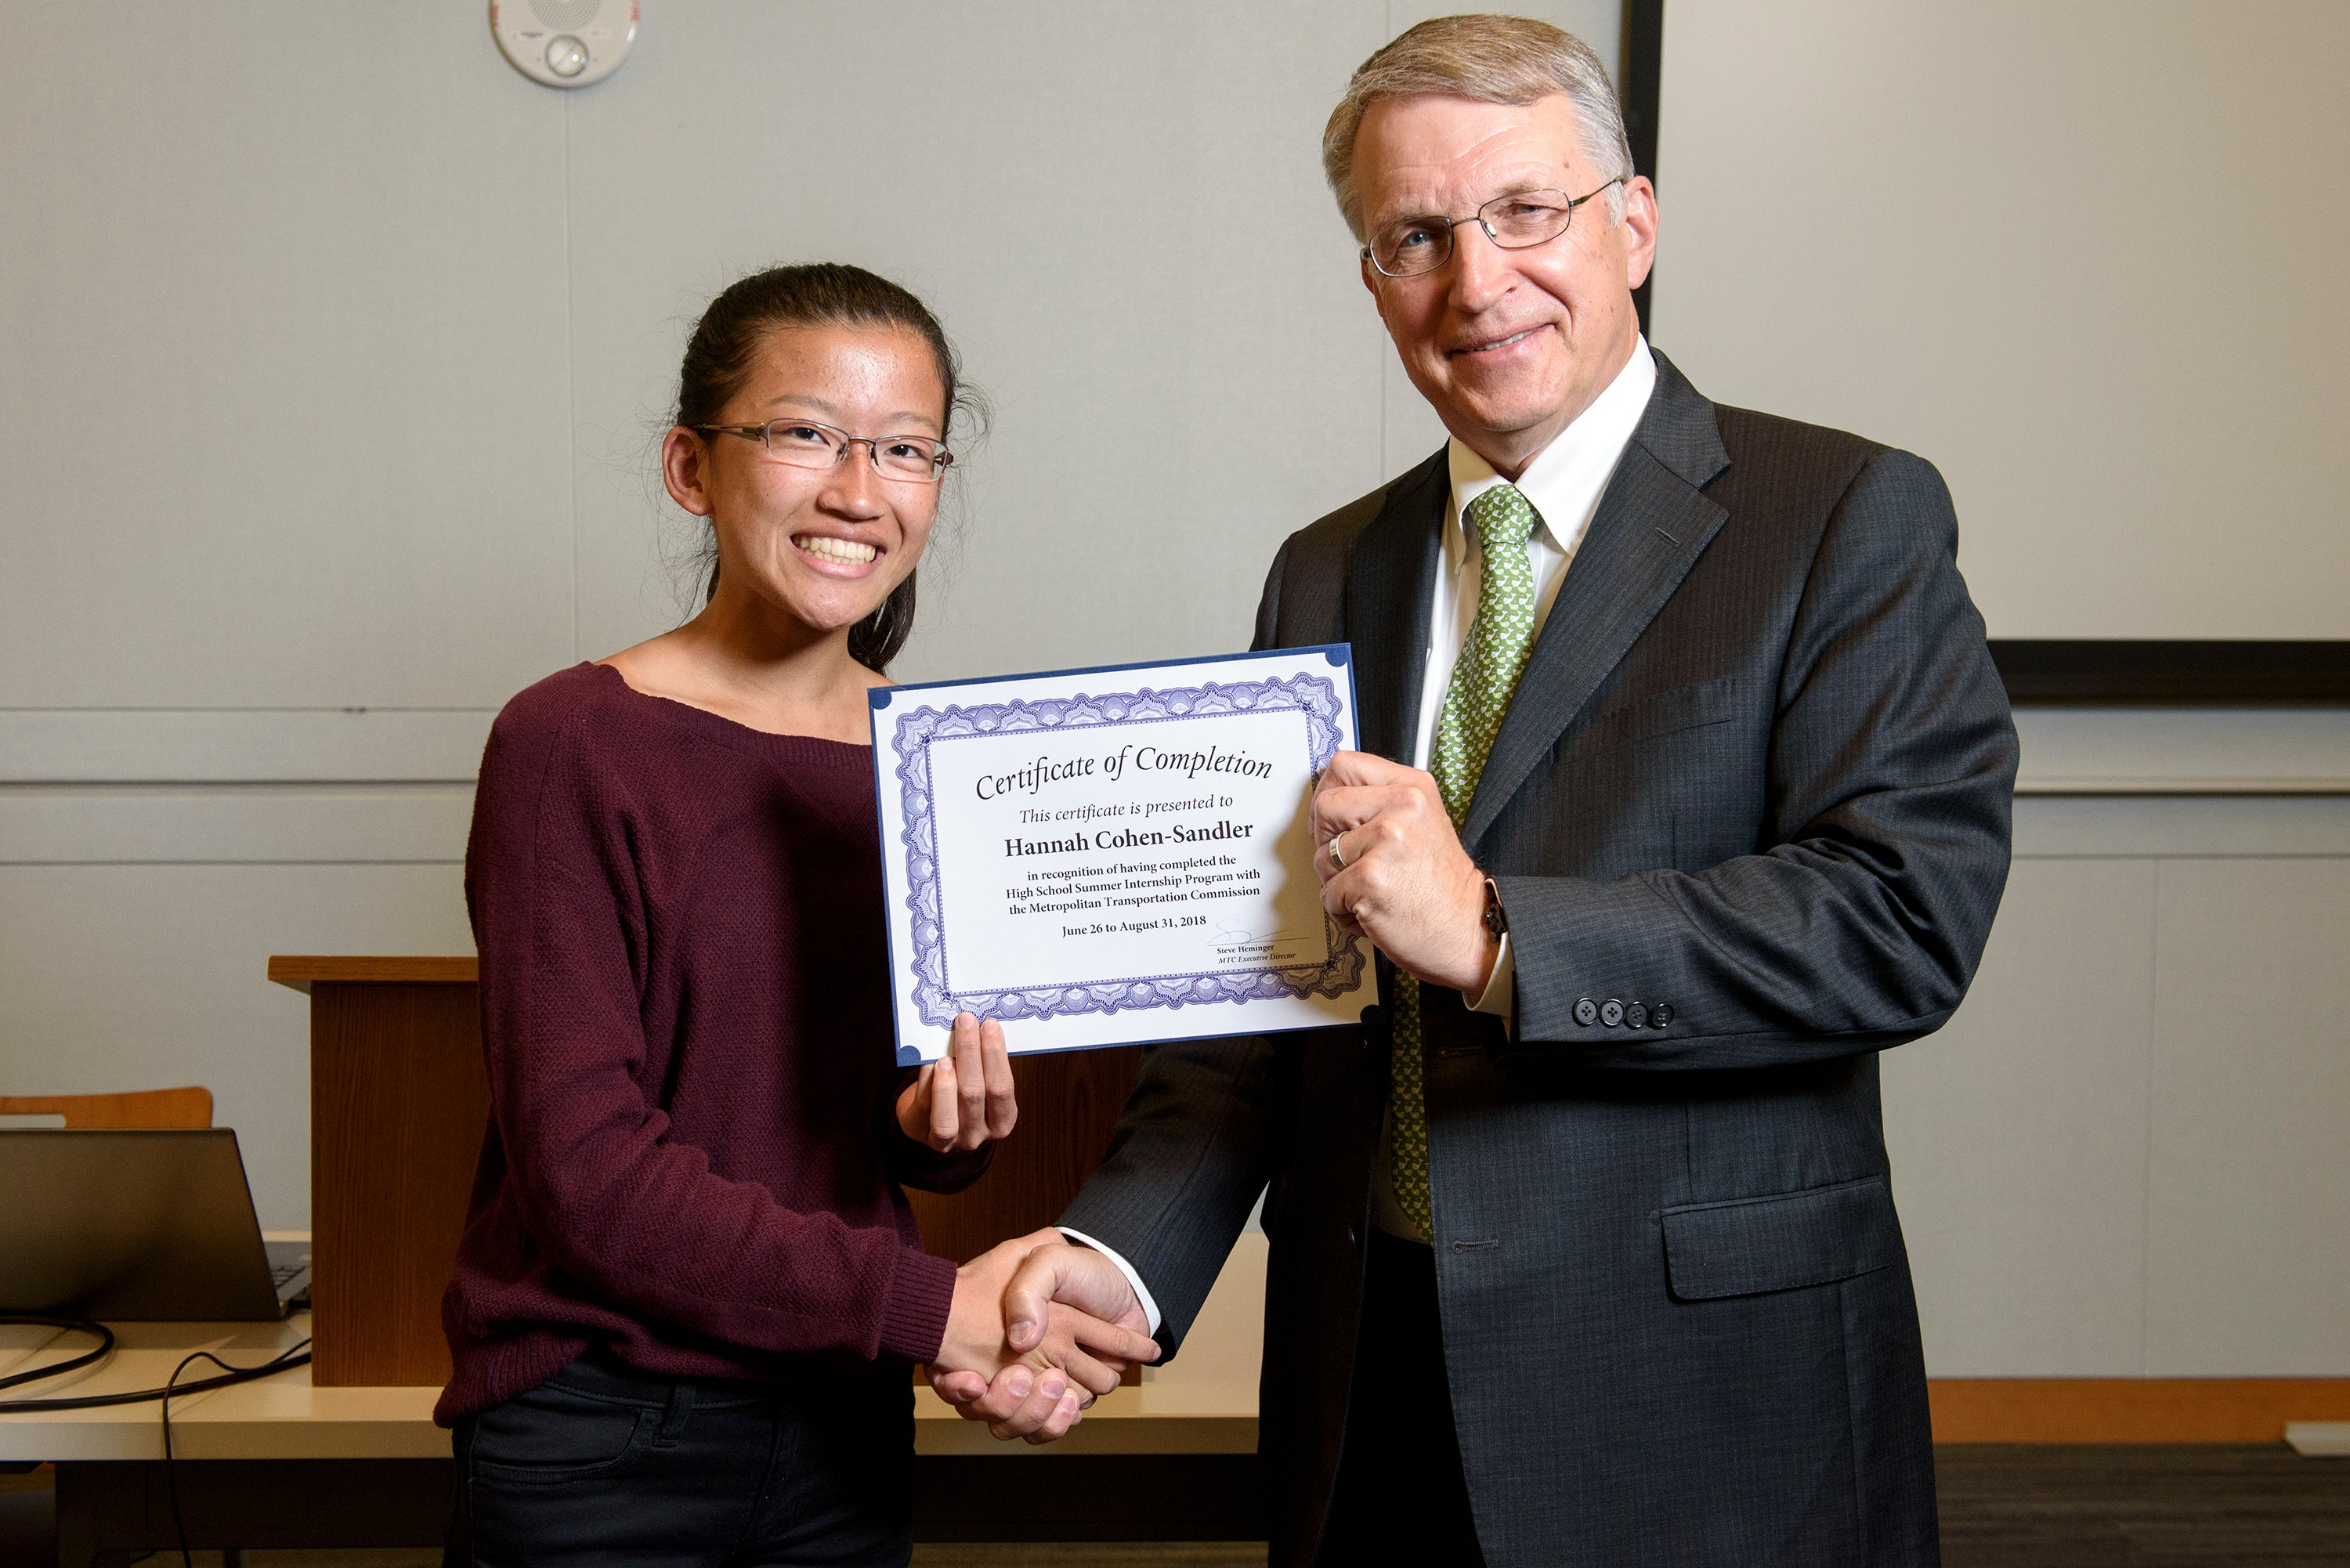 MTC high school intern Hannah Cohen-Sandler receives her certificate for completing the program.